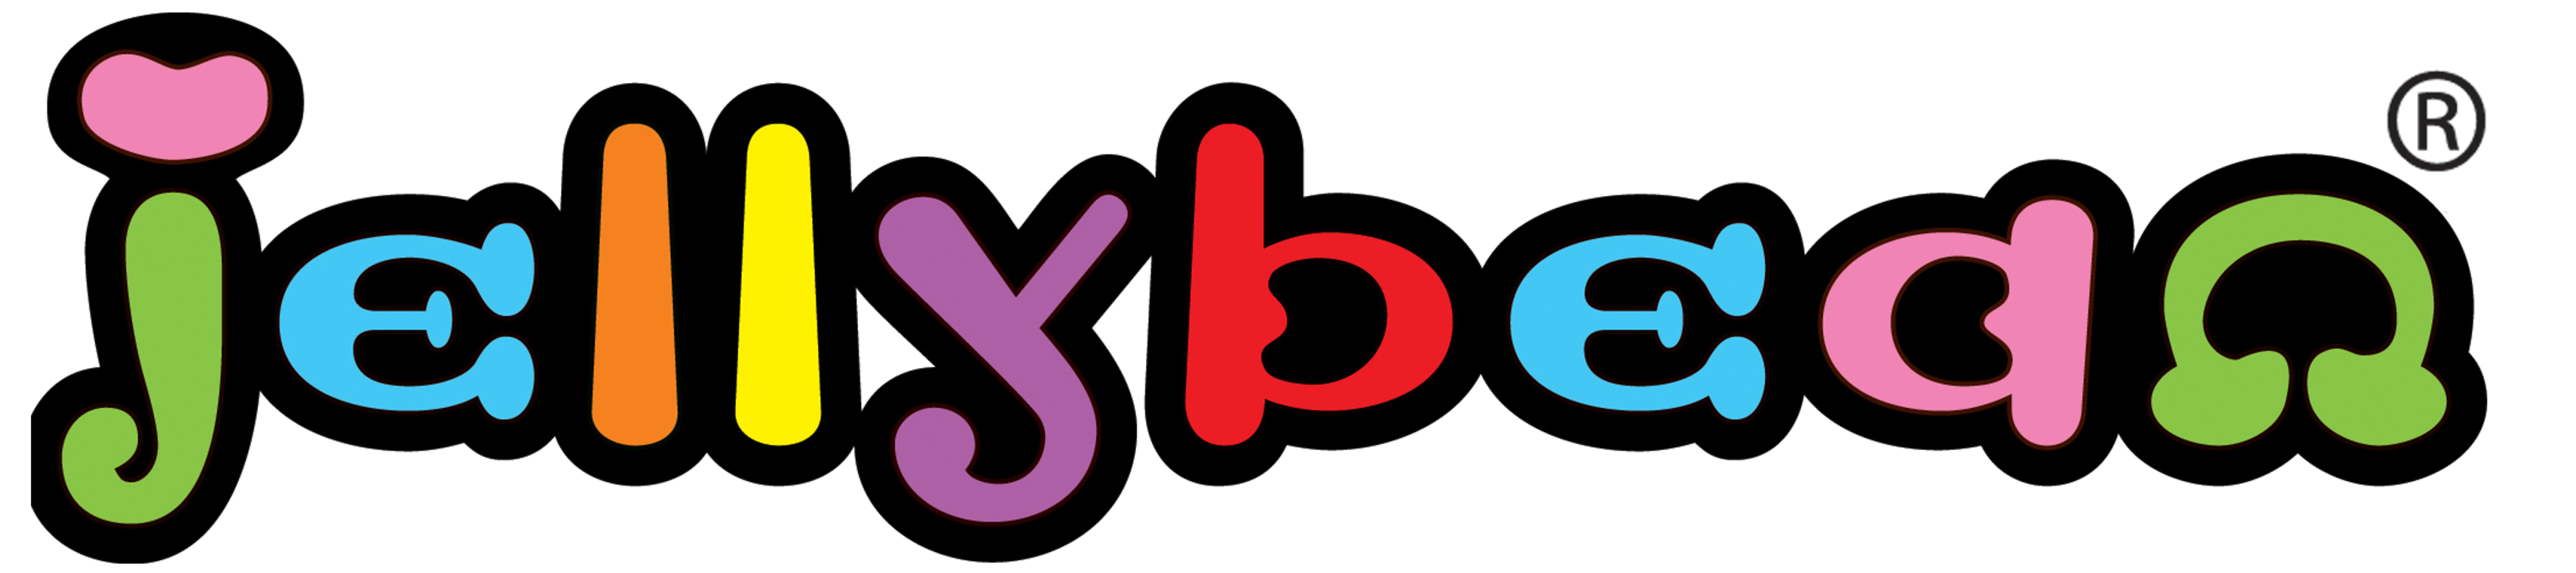 jellybean-registered-logo-description.png